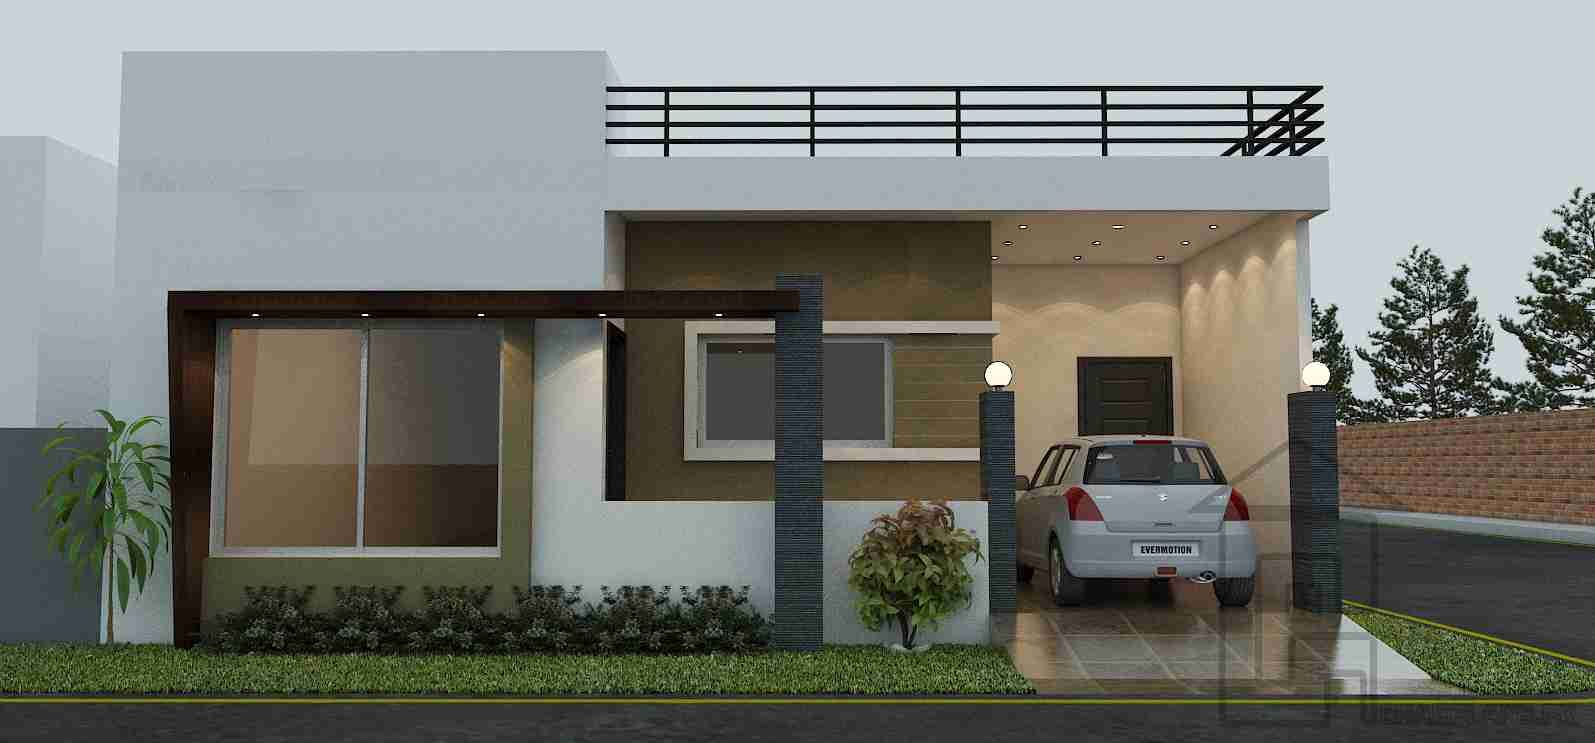 Front Boundary Wall Elevation : Indian house front boundary wall designs google search